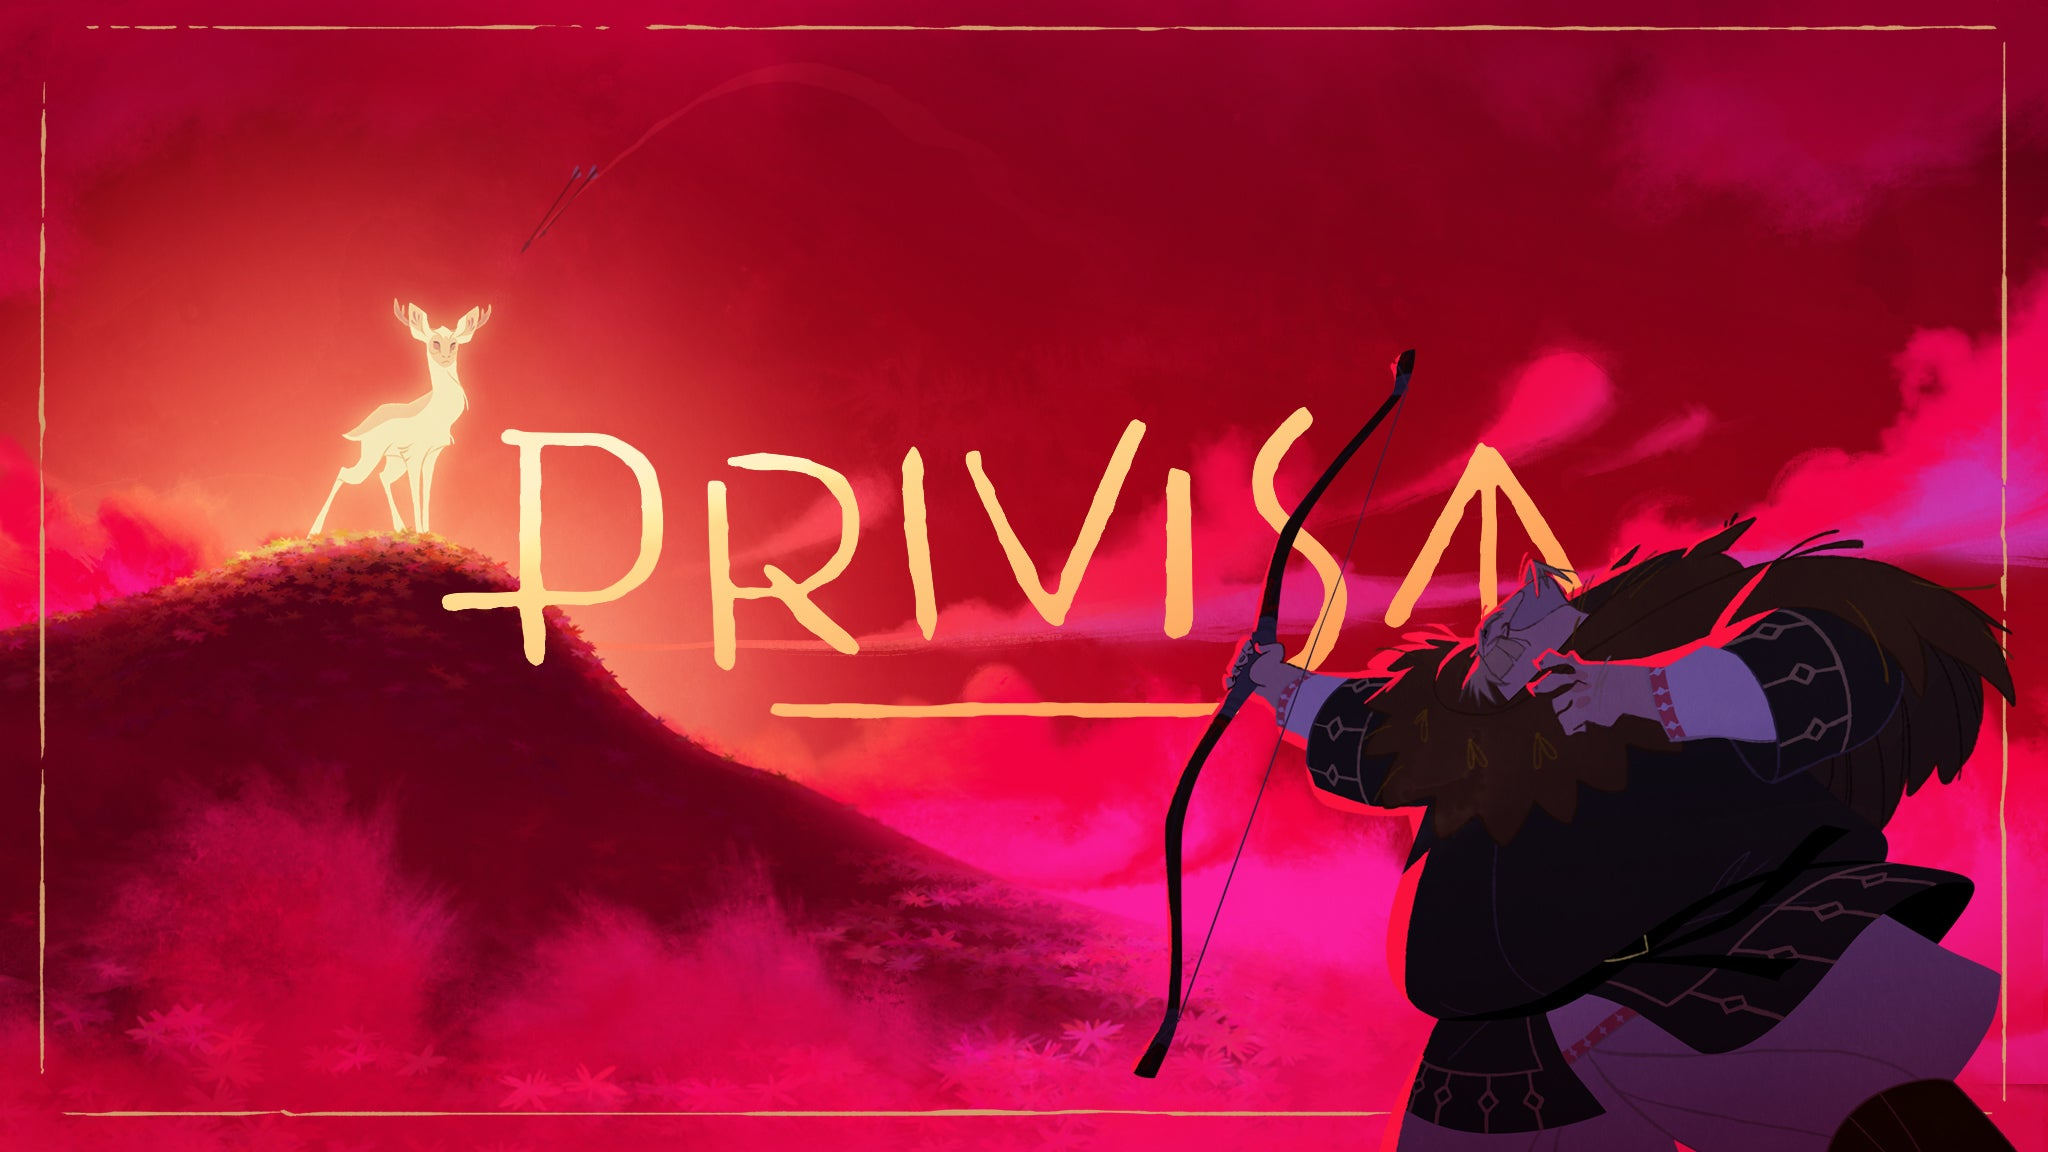 Privisa Is A Beautiful New Animated Film